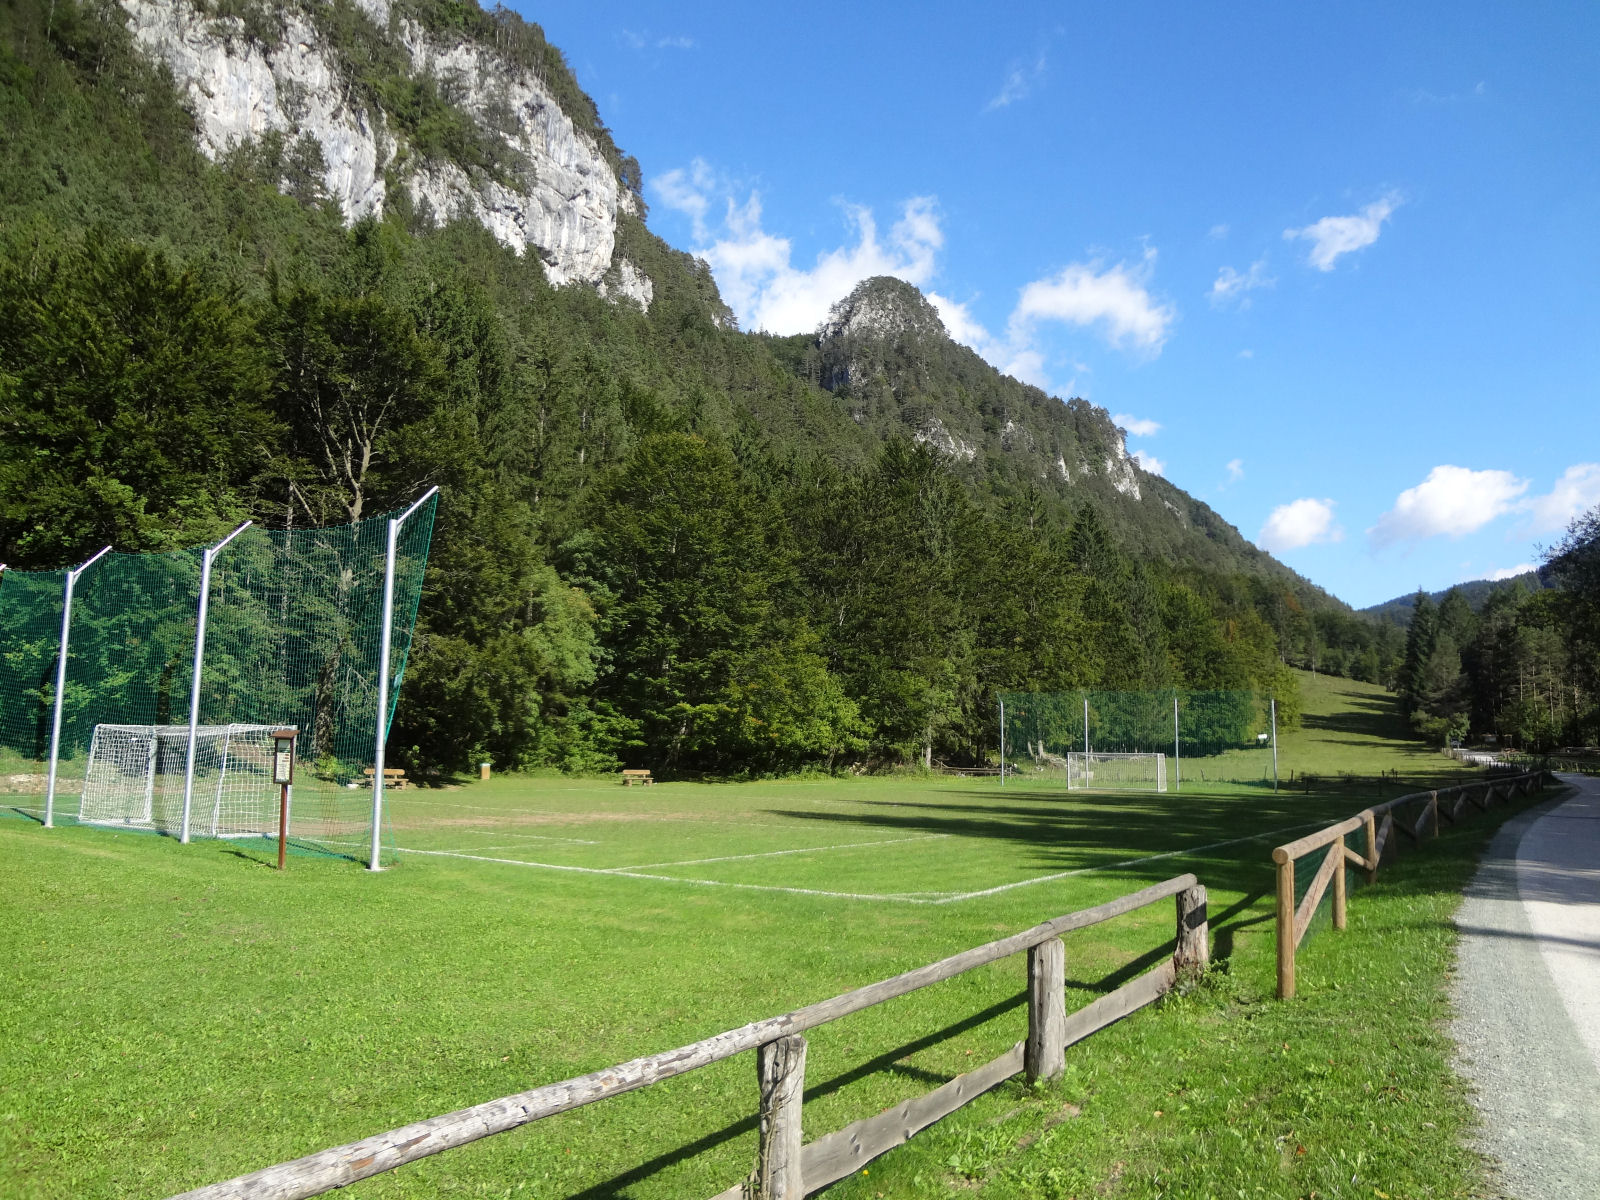 soccer-field-recreation-park-zavrsnica